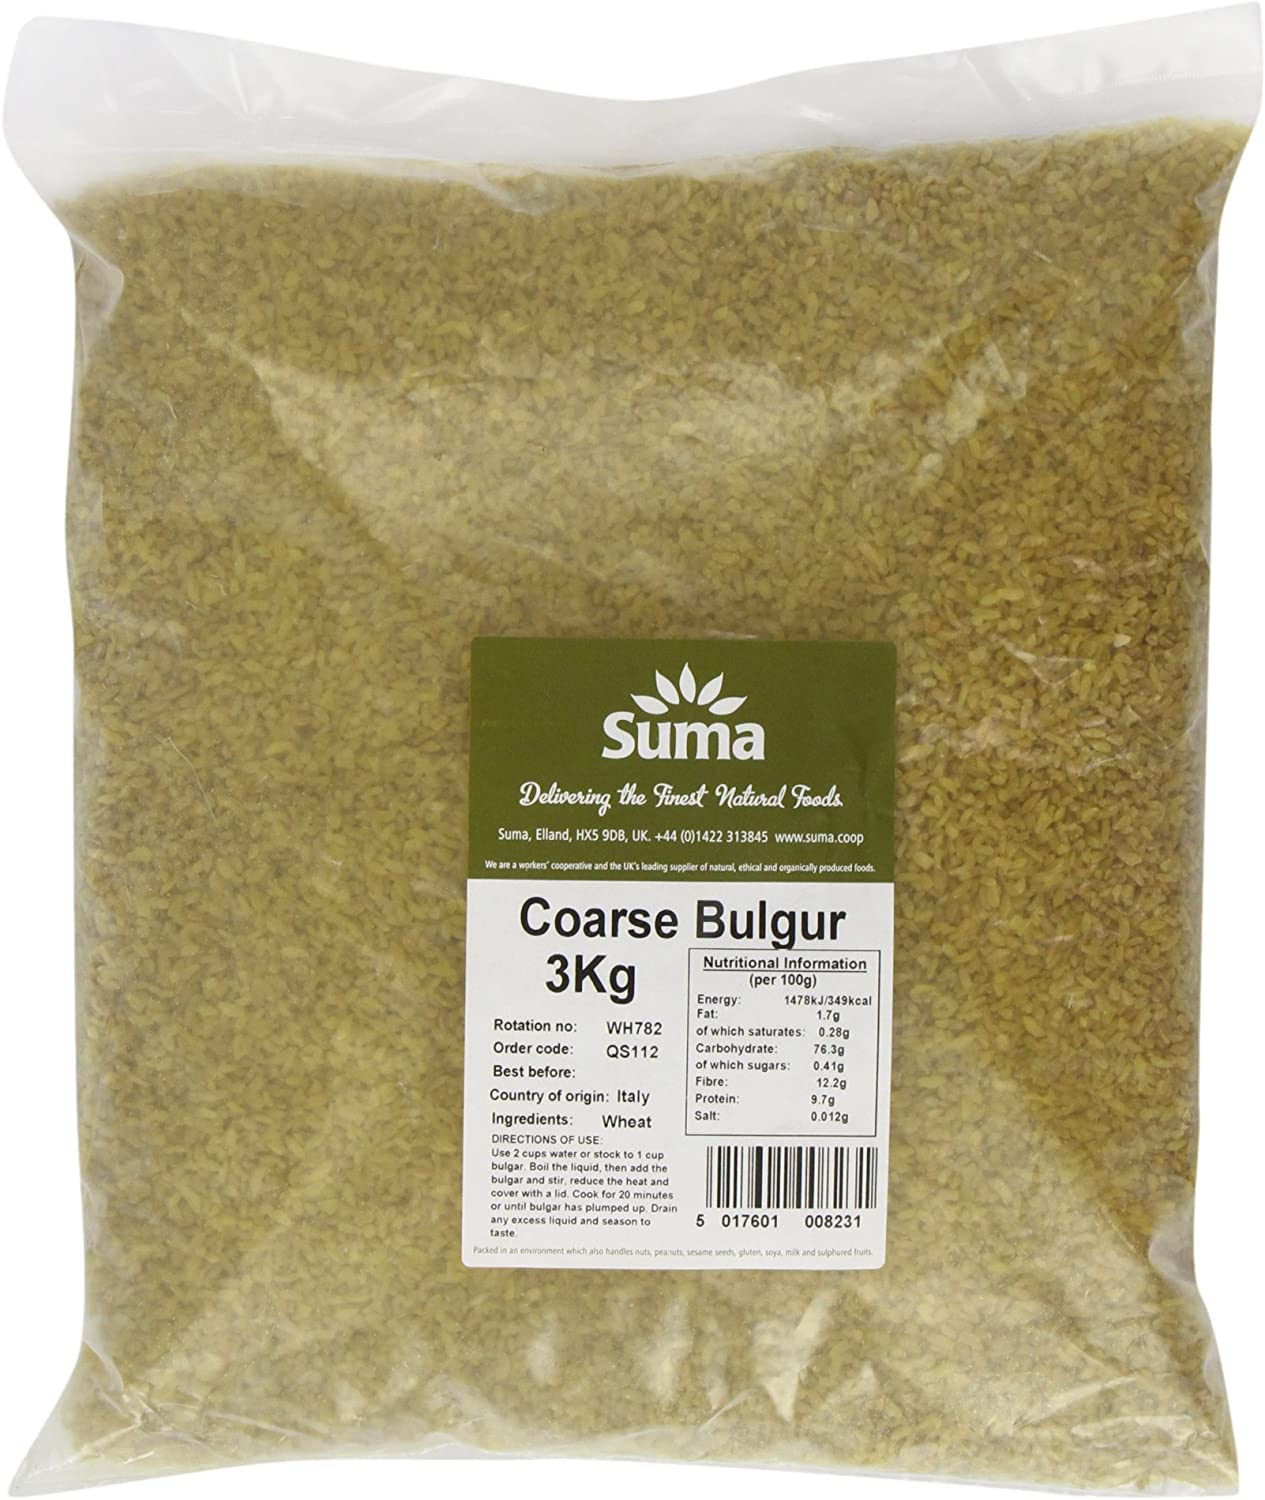 Suma Coarse Bulgar Wheat 3kg